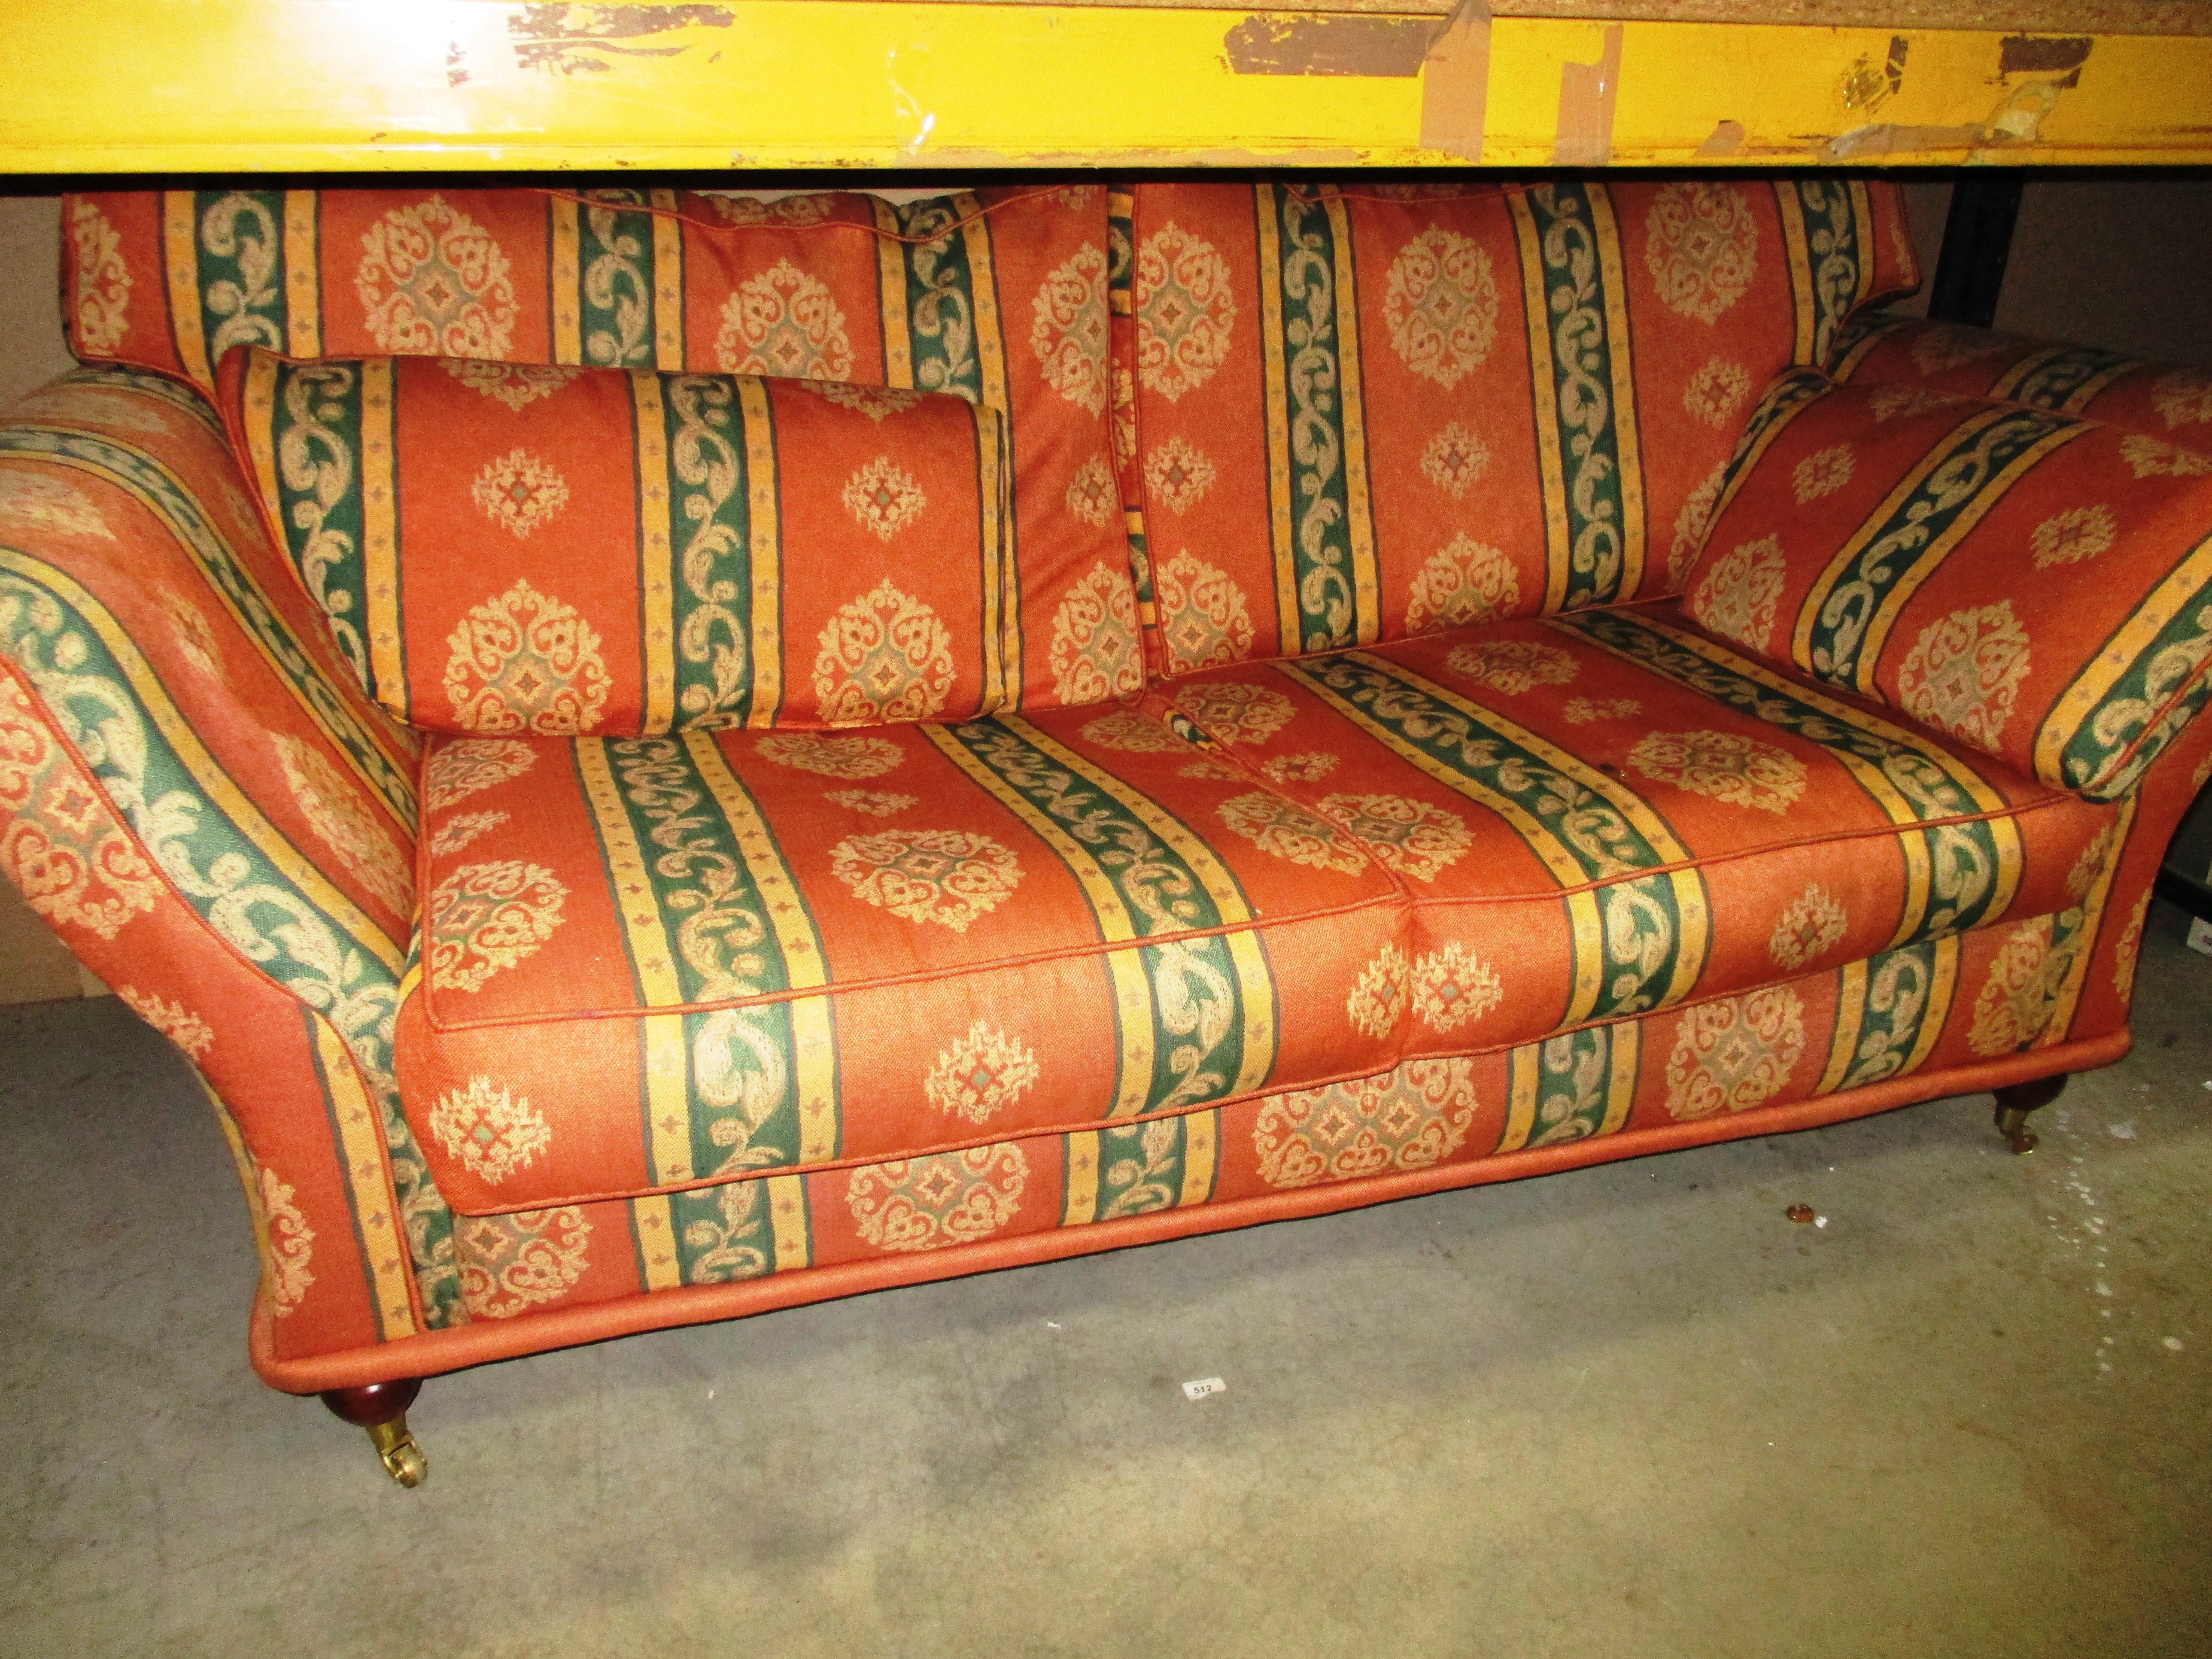 Lot 19 - An orange and green patterned 3 seater sofa